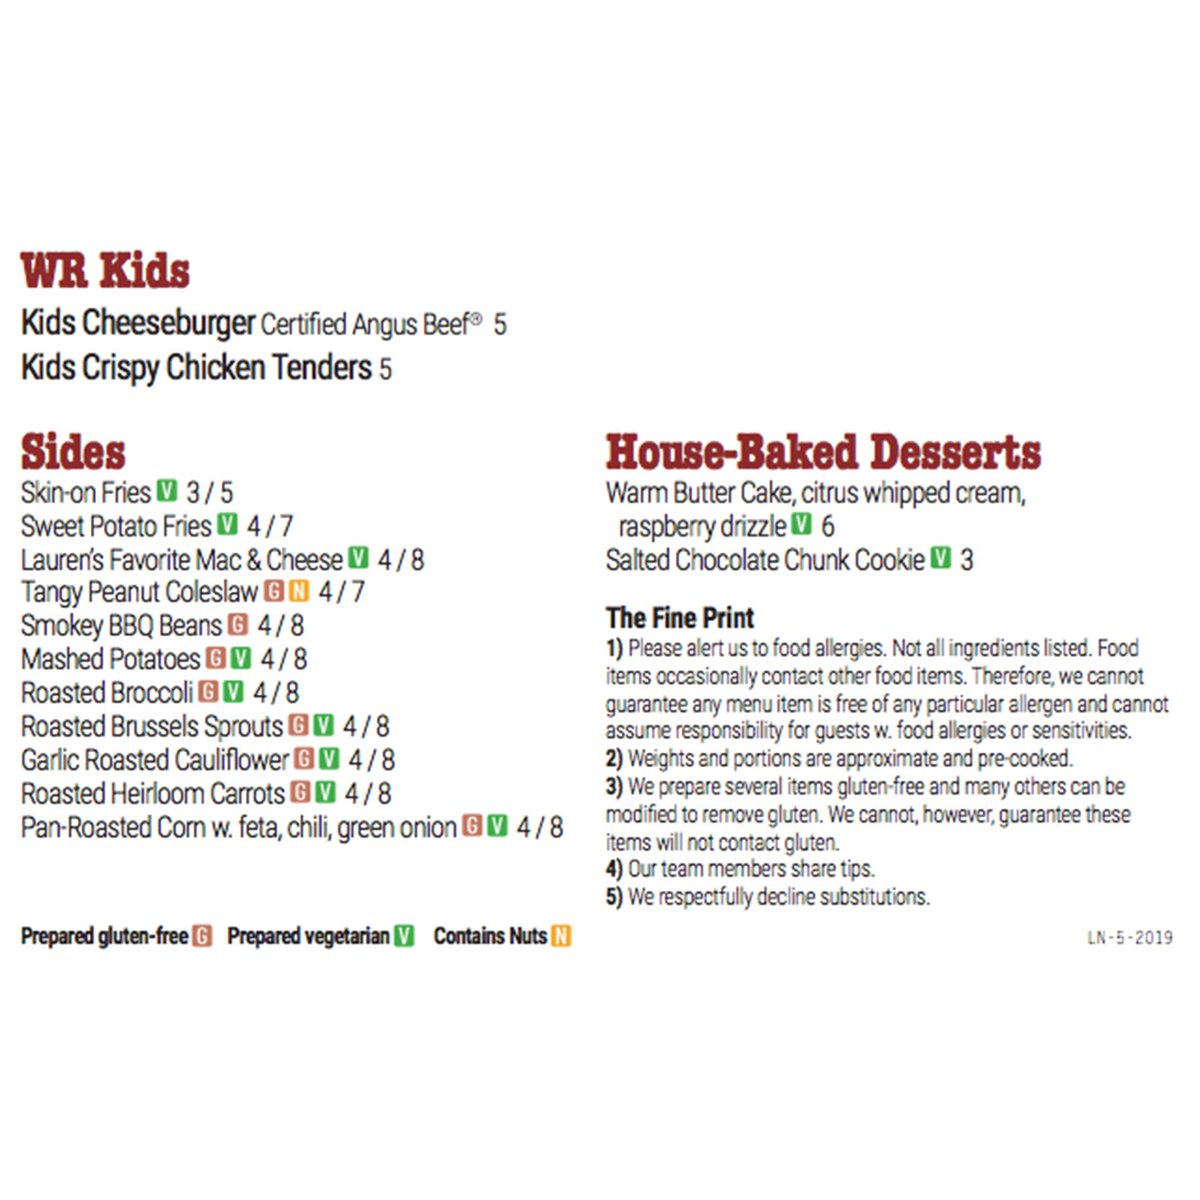 Wr Kitchen Bar On Twitter Presenting The Wrkb Menu What Will Be The First Thing You Order When We Open On Monday